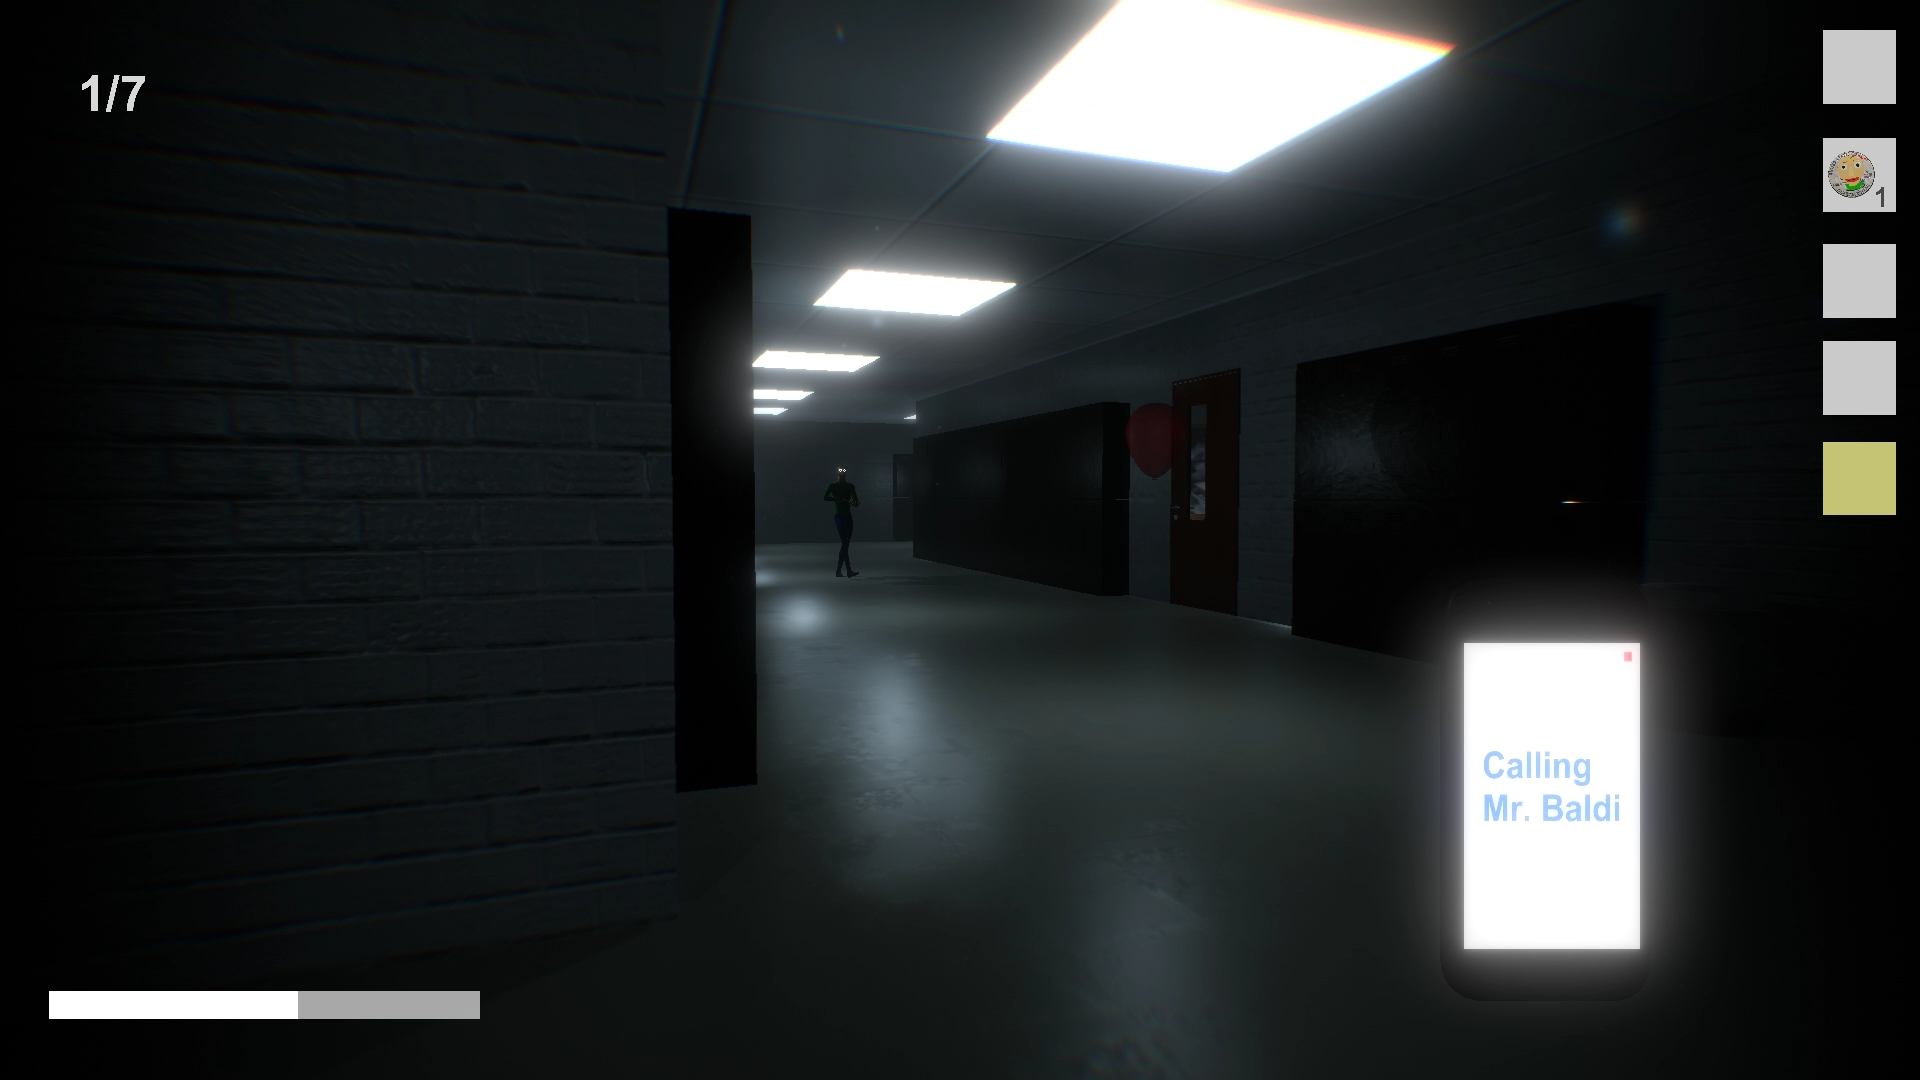 PC] Baldimore's Highschool - Survival Horror Game [#1 PAID GAME ON